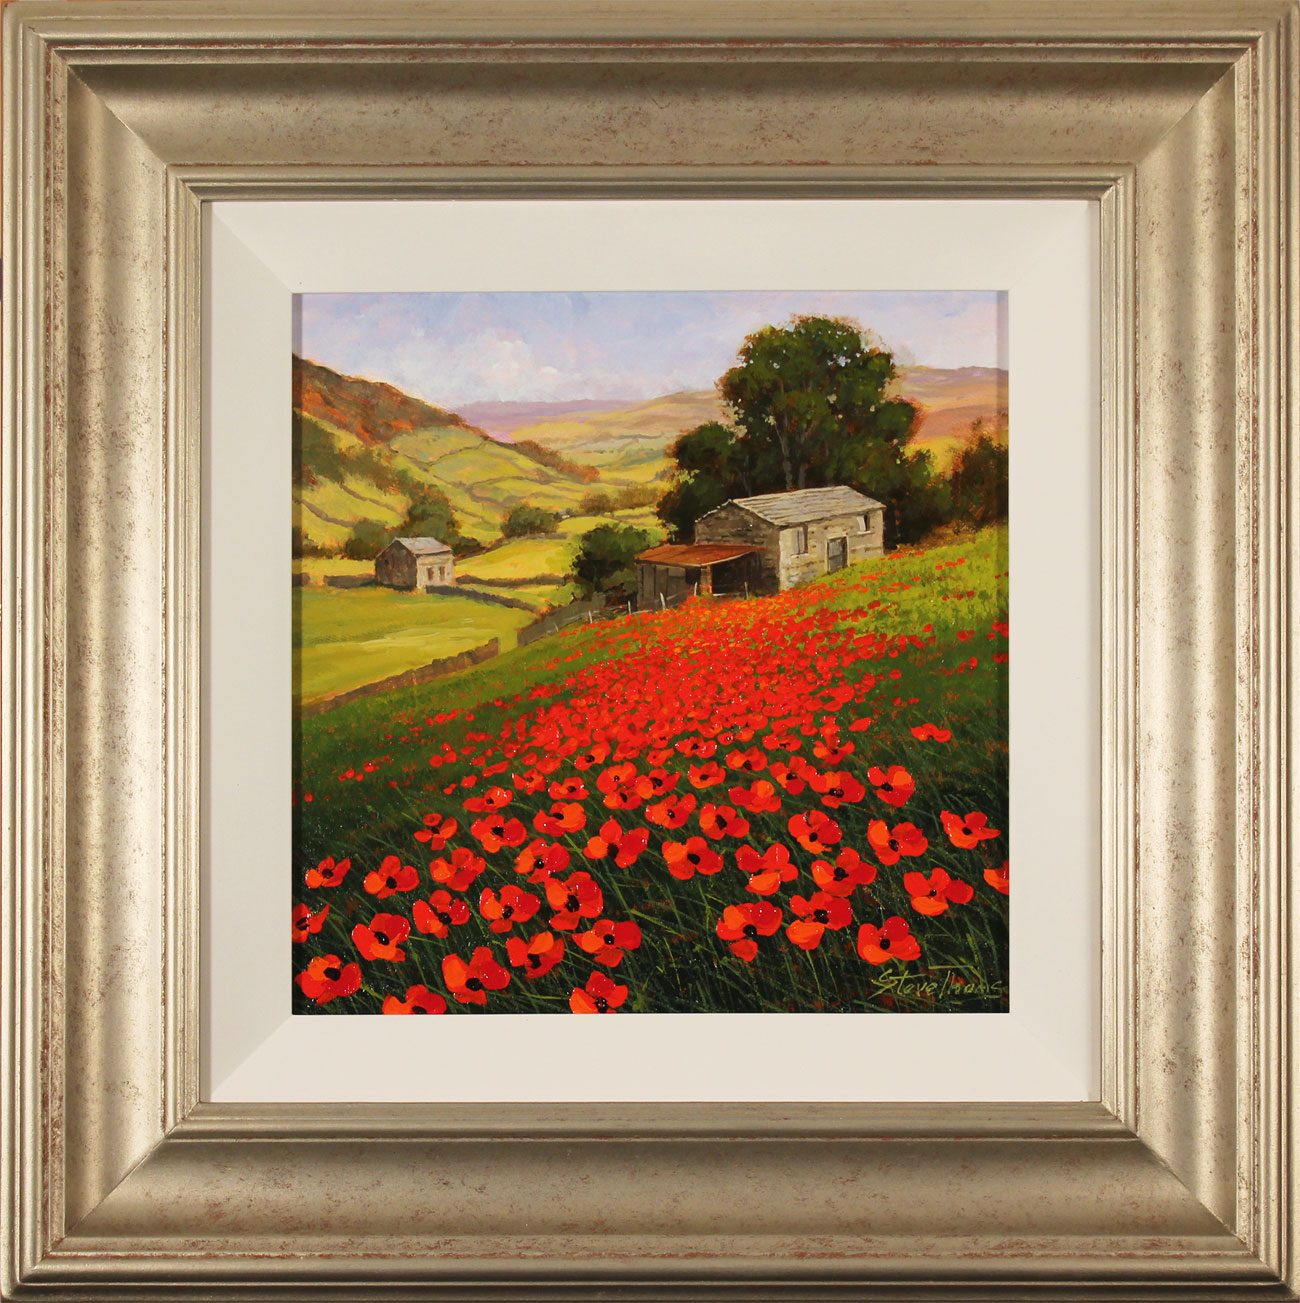 Steve Thoms, Original oil painting on panel, Yorkshire Poppies Click to enlarge